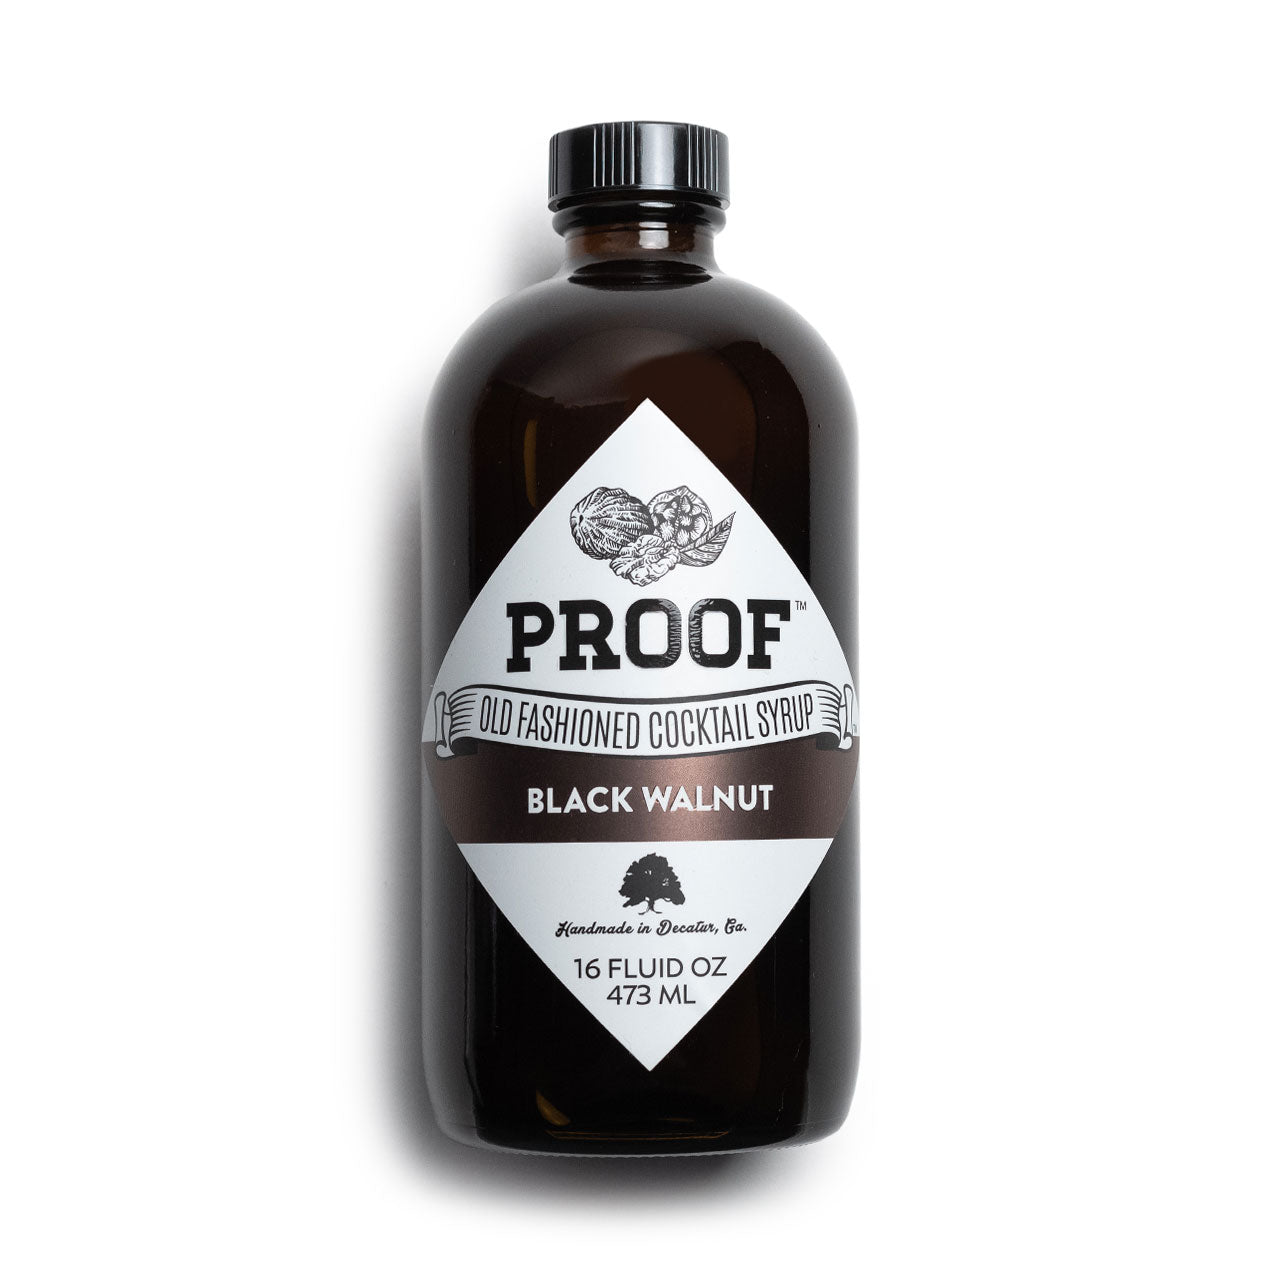 Proof Black Walnut Old Fashioned Cocktail Syrup